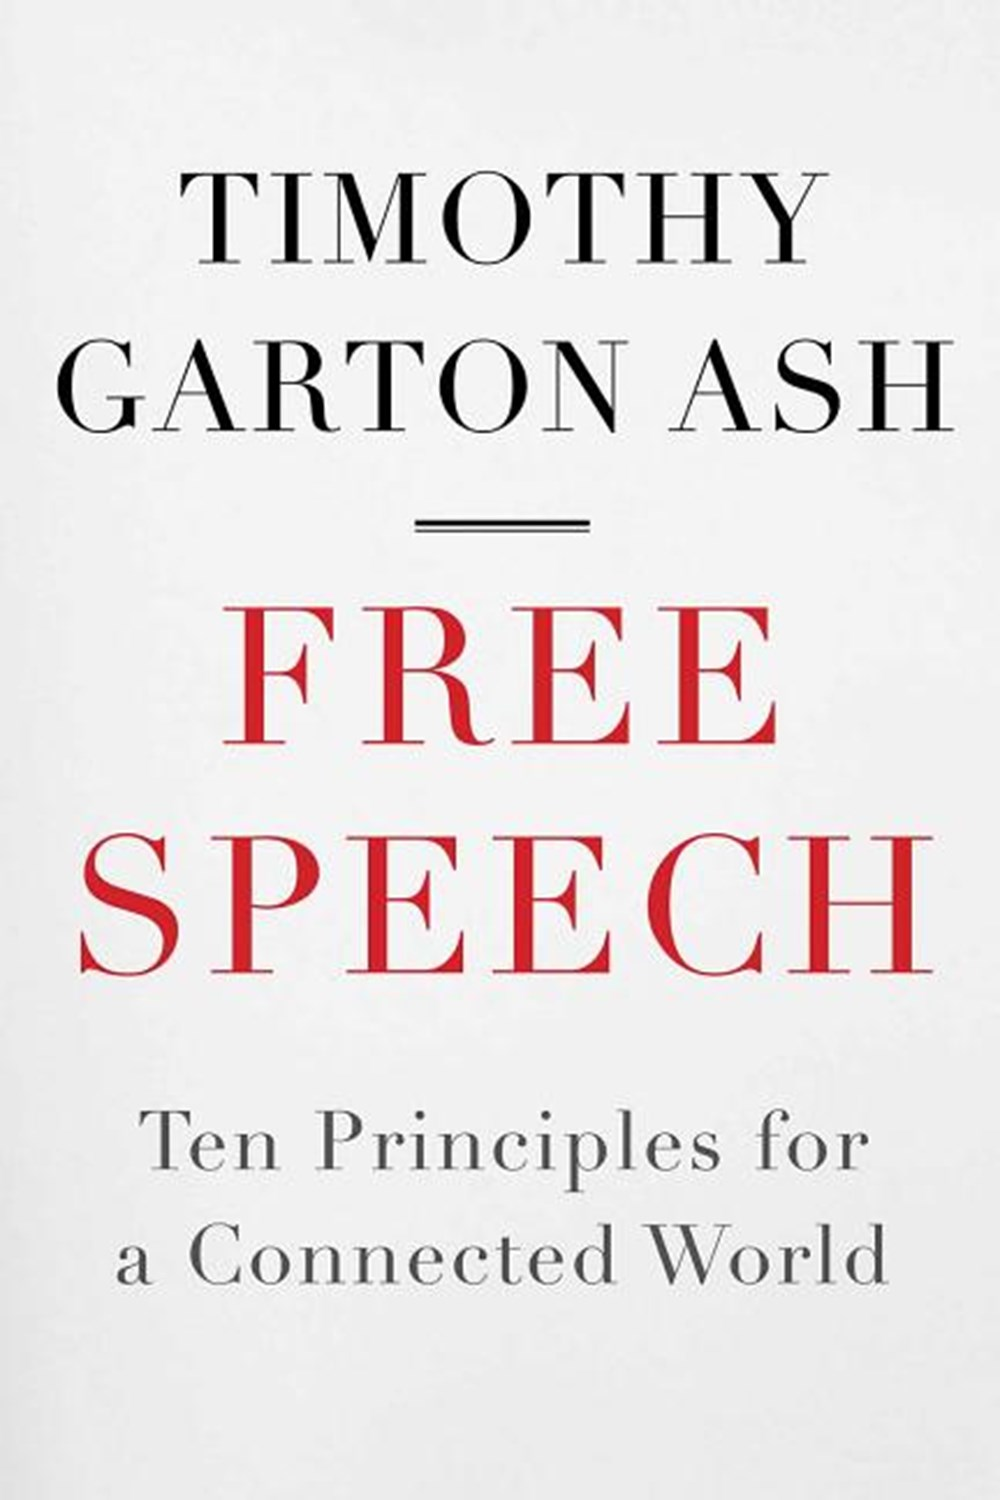 Free Speech Ten Principles for a Connected World